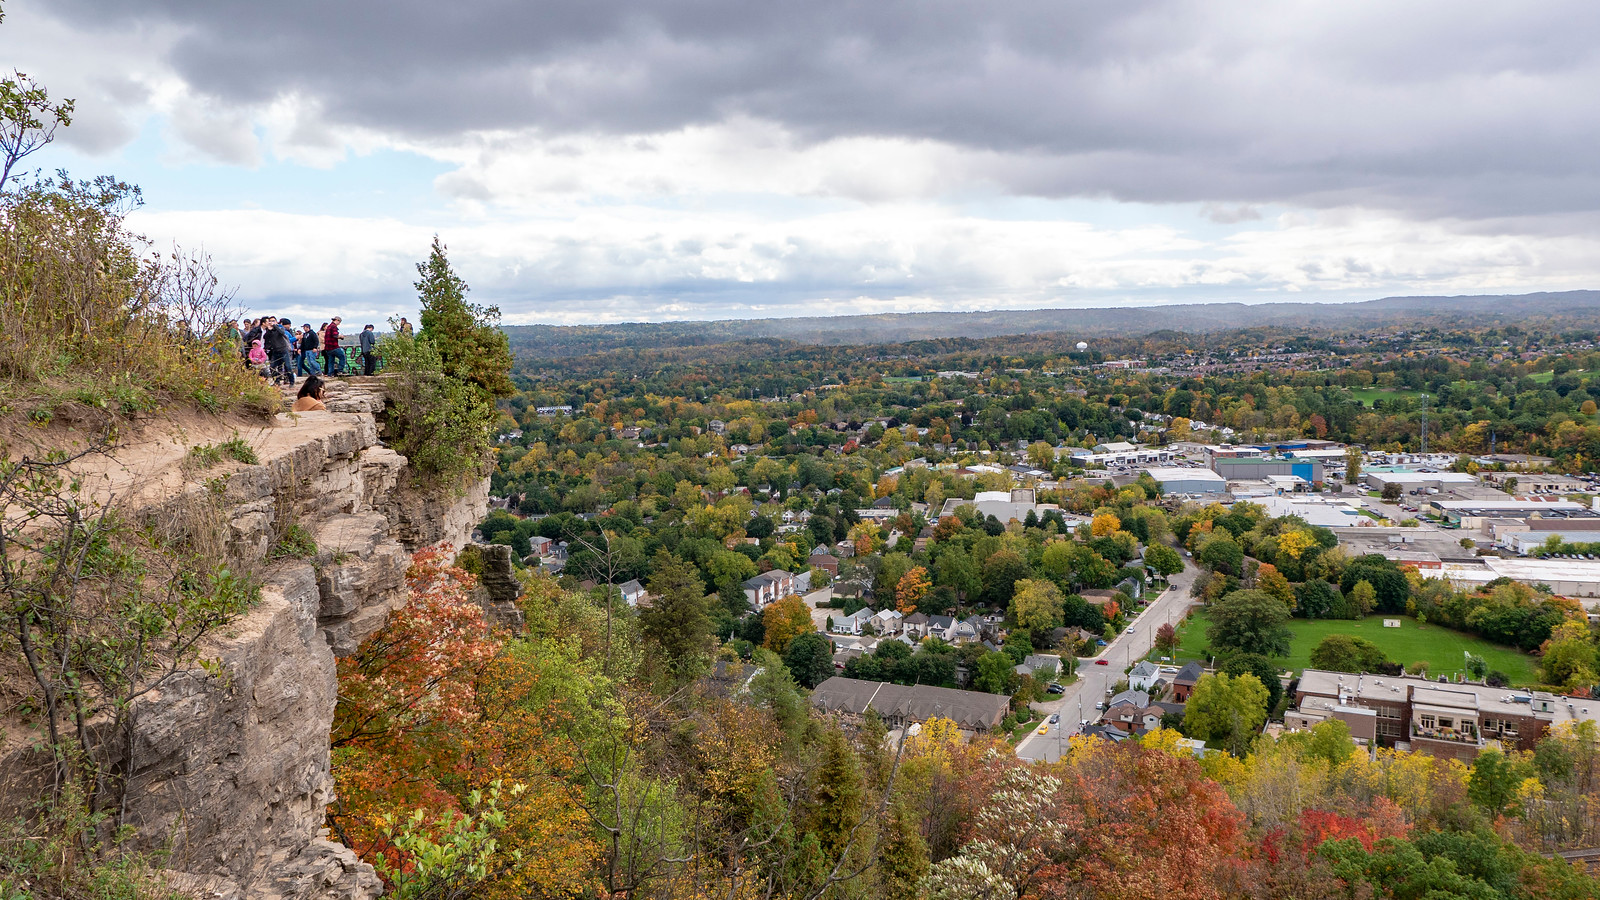 The Dundas Peak overlooking town